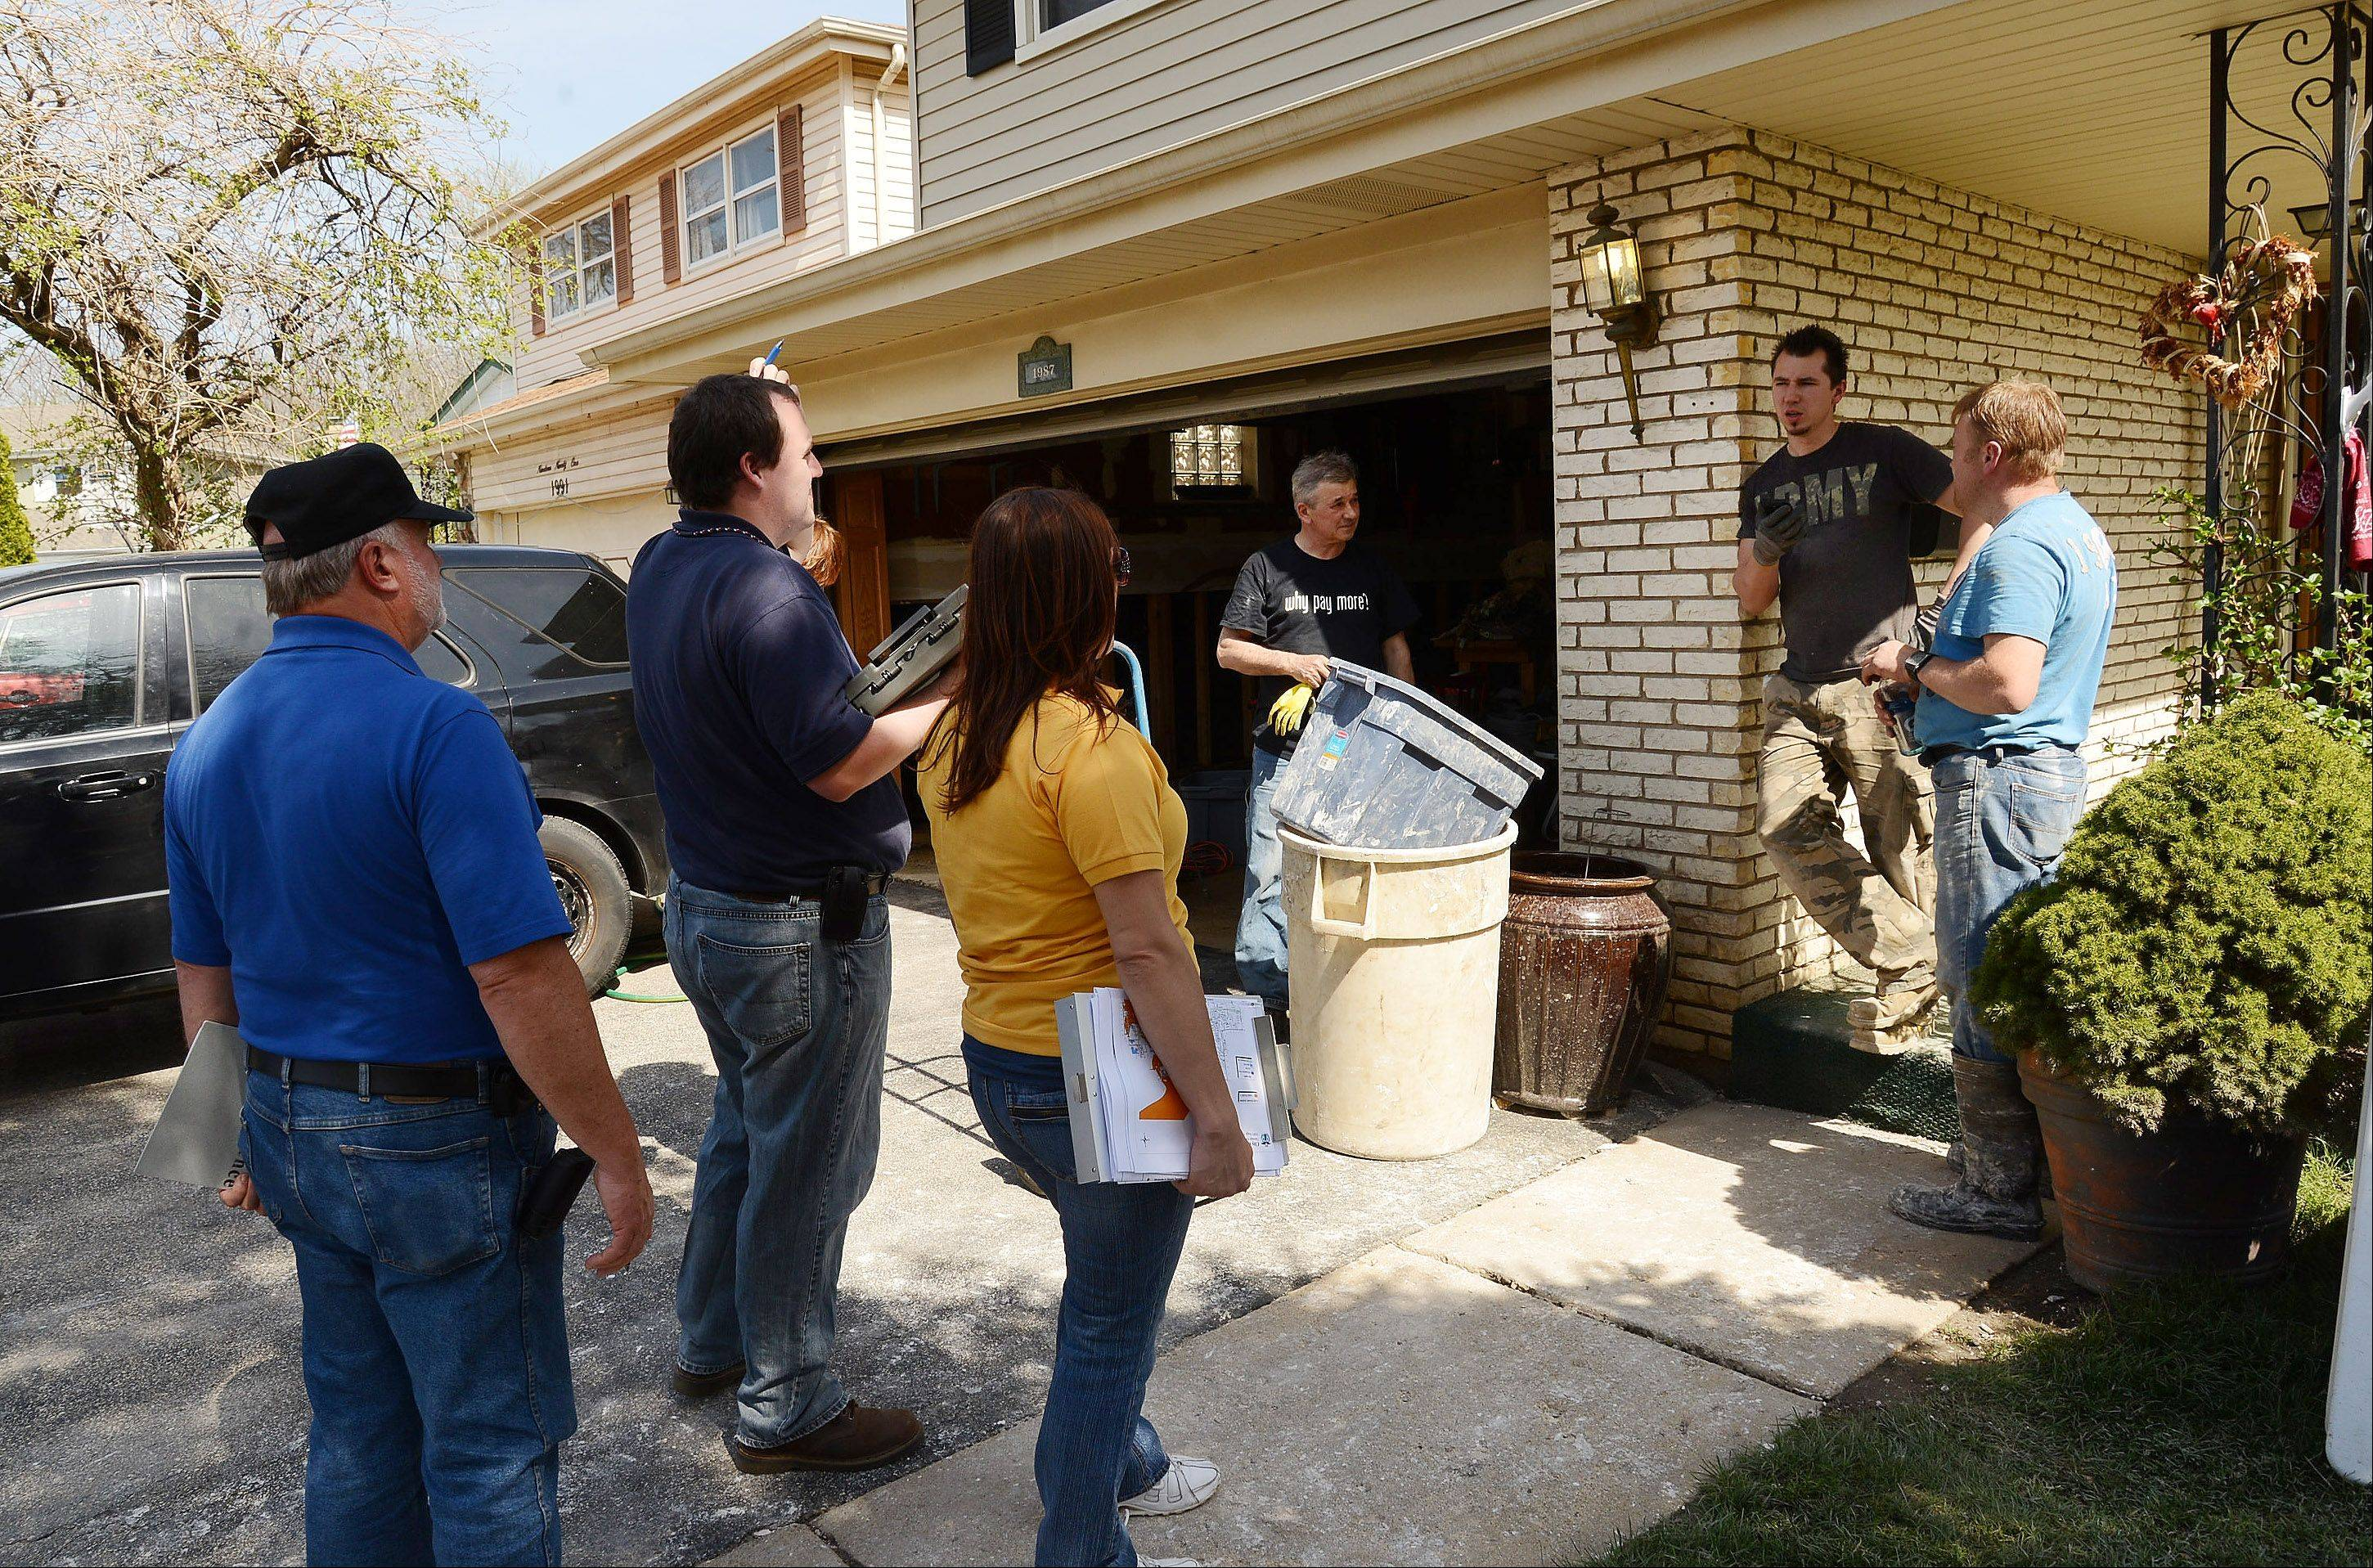 FEMA workers spoke with property owners along Big Bend Drive in Des Plaines on Tuesday to assess the damage from recent flooding. Their findings will help determine whether the city is declared a disaster area, making residents eligible for federal assistance.